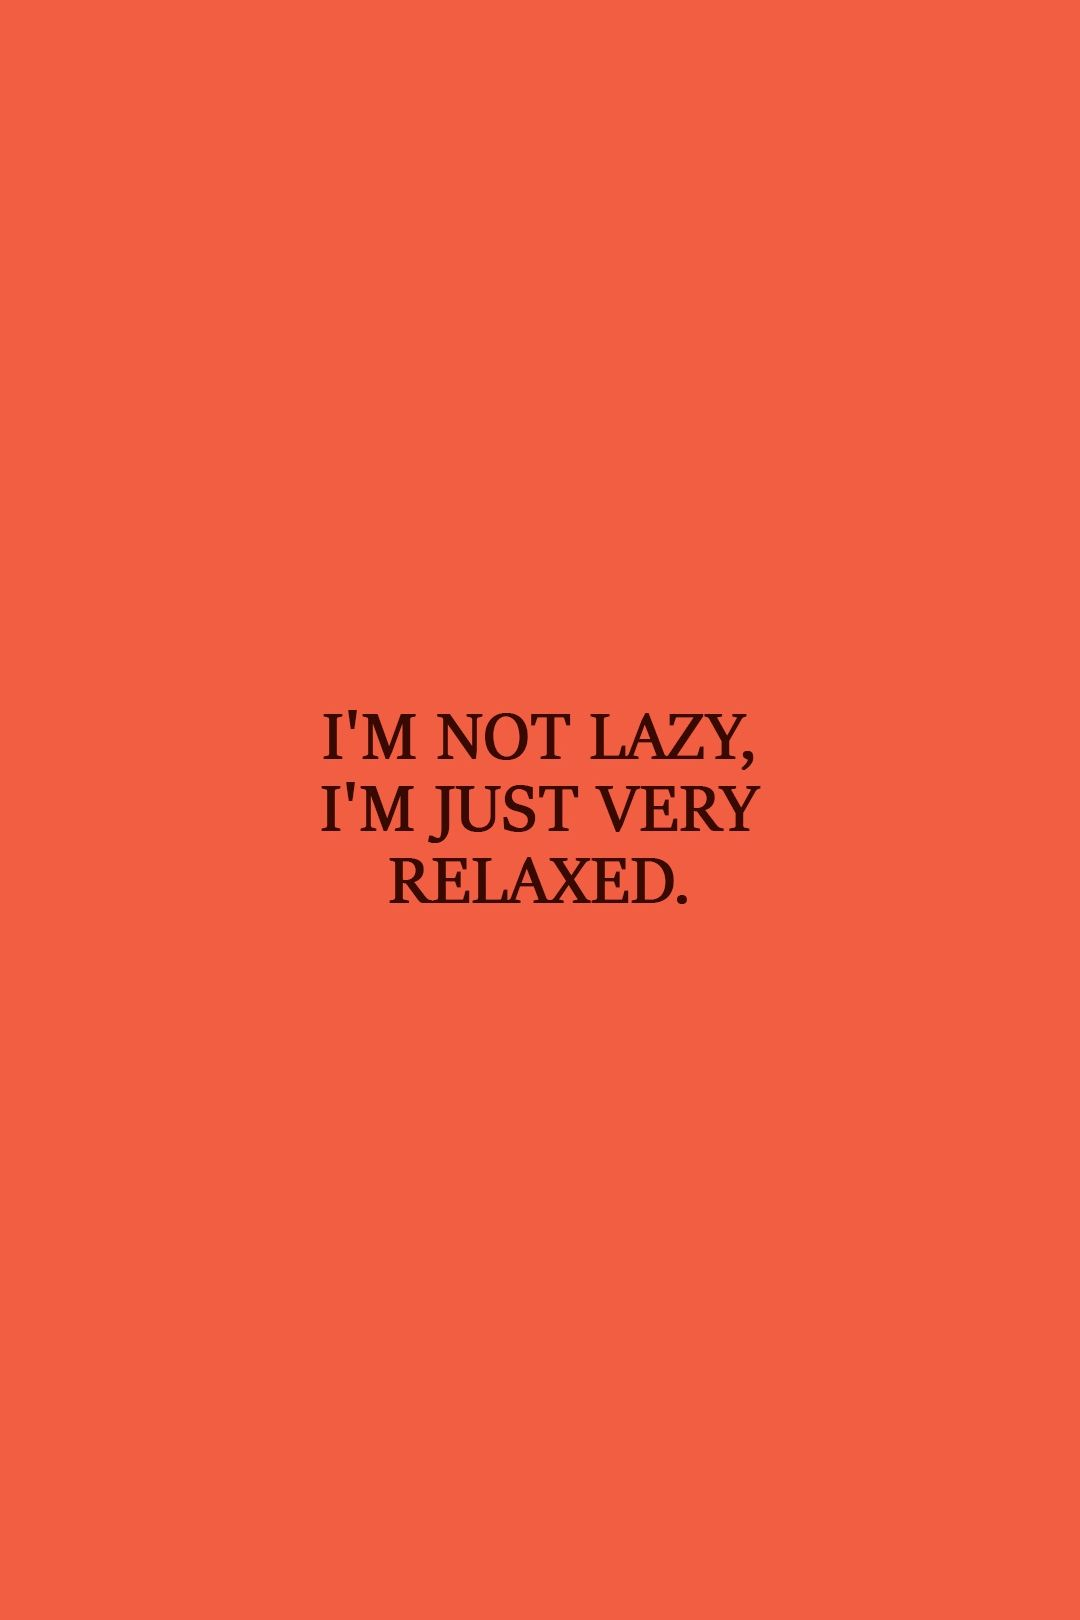 40 Best Laziness Quotes Scattered Quotes Lazy Quotes Funny Lazy Quotes Quote Aesthetic